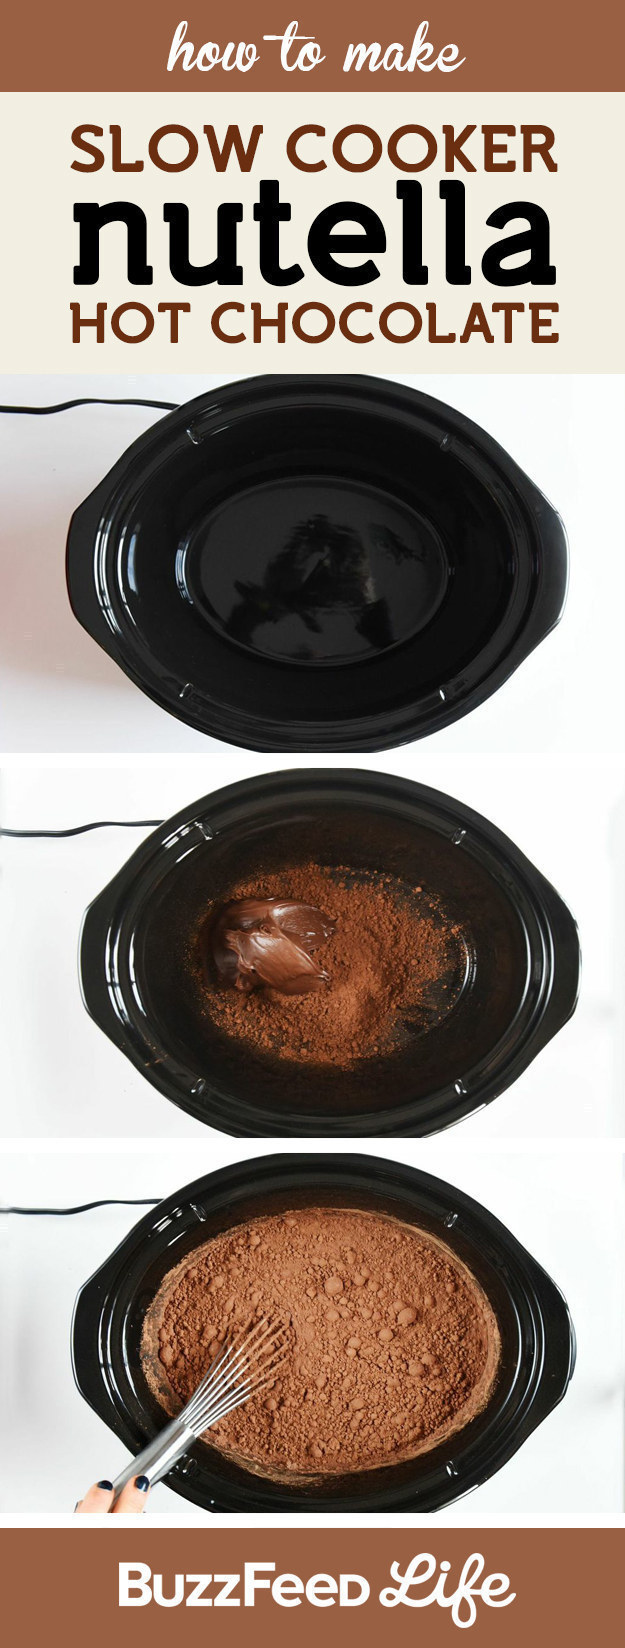 Or make a big batch of hot chocolate and spike it with NUTELLA. Serving size: one.